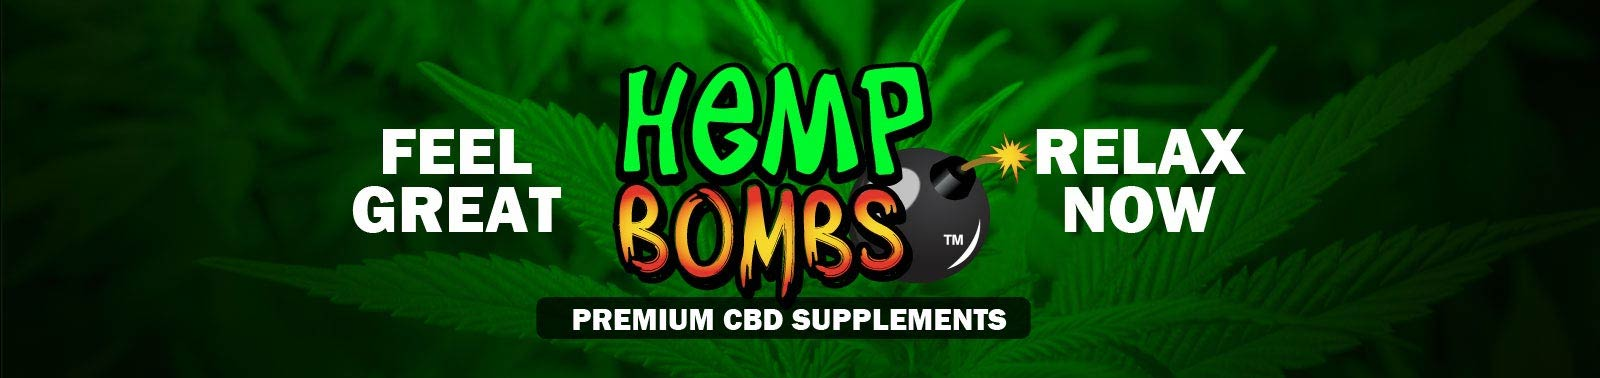 slider_hempbombs-feel-great-relax-now-1600x378px